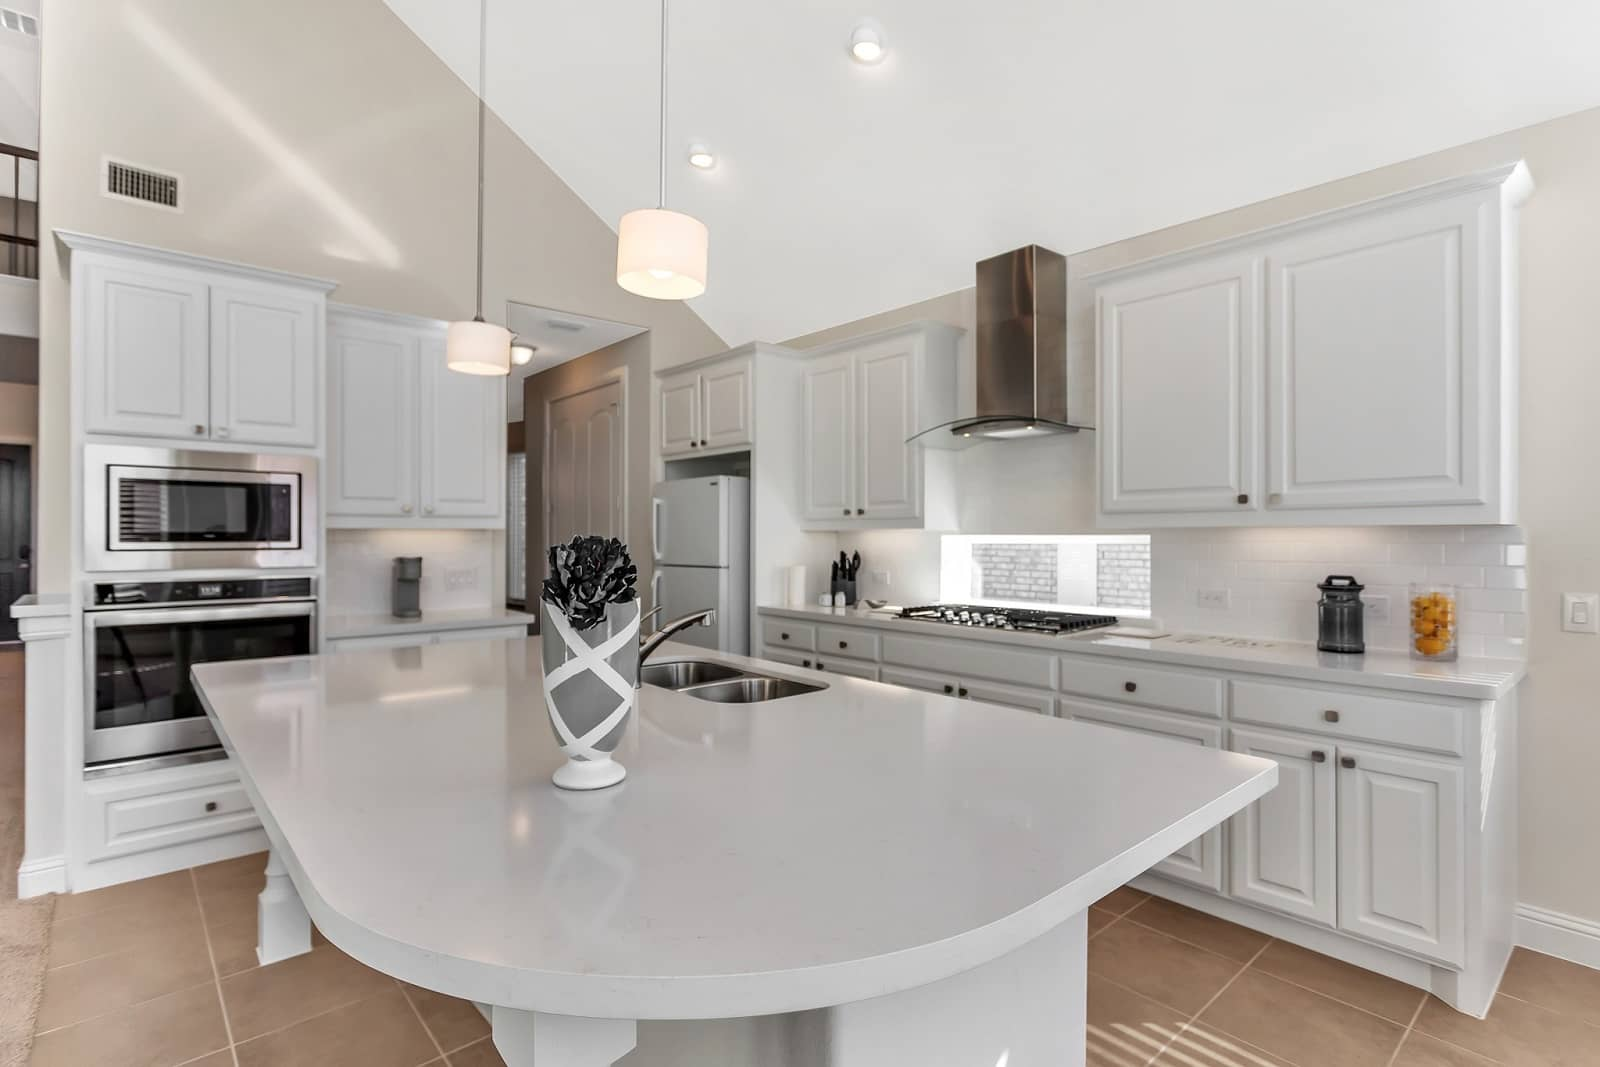 Real Estate Photography in Irving - TX - Kitchen View